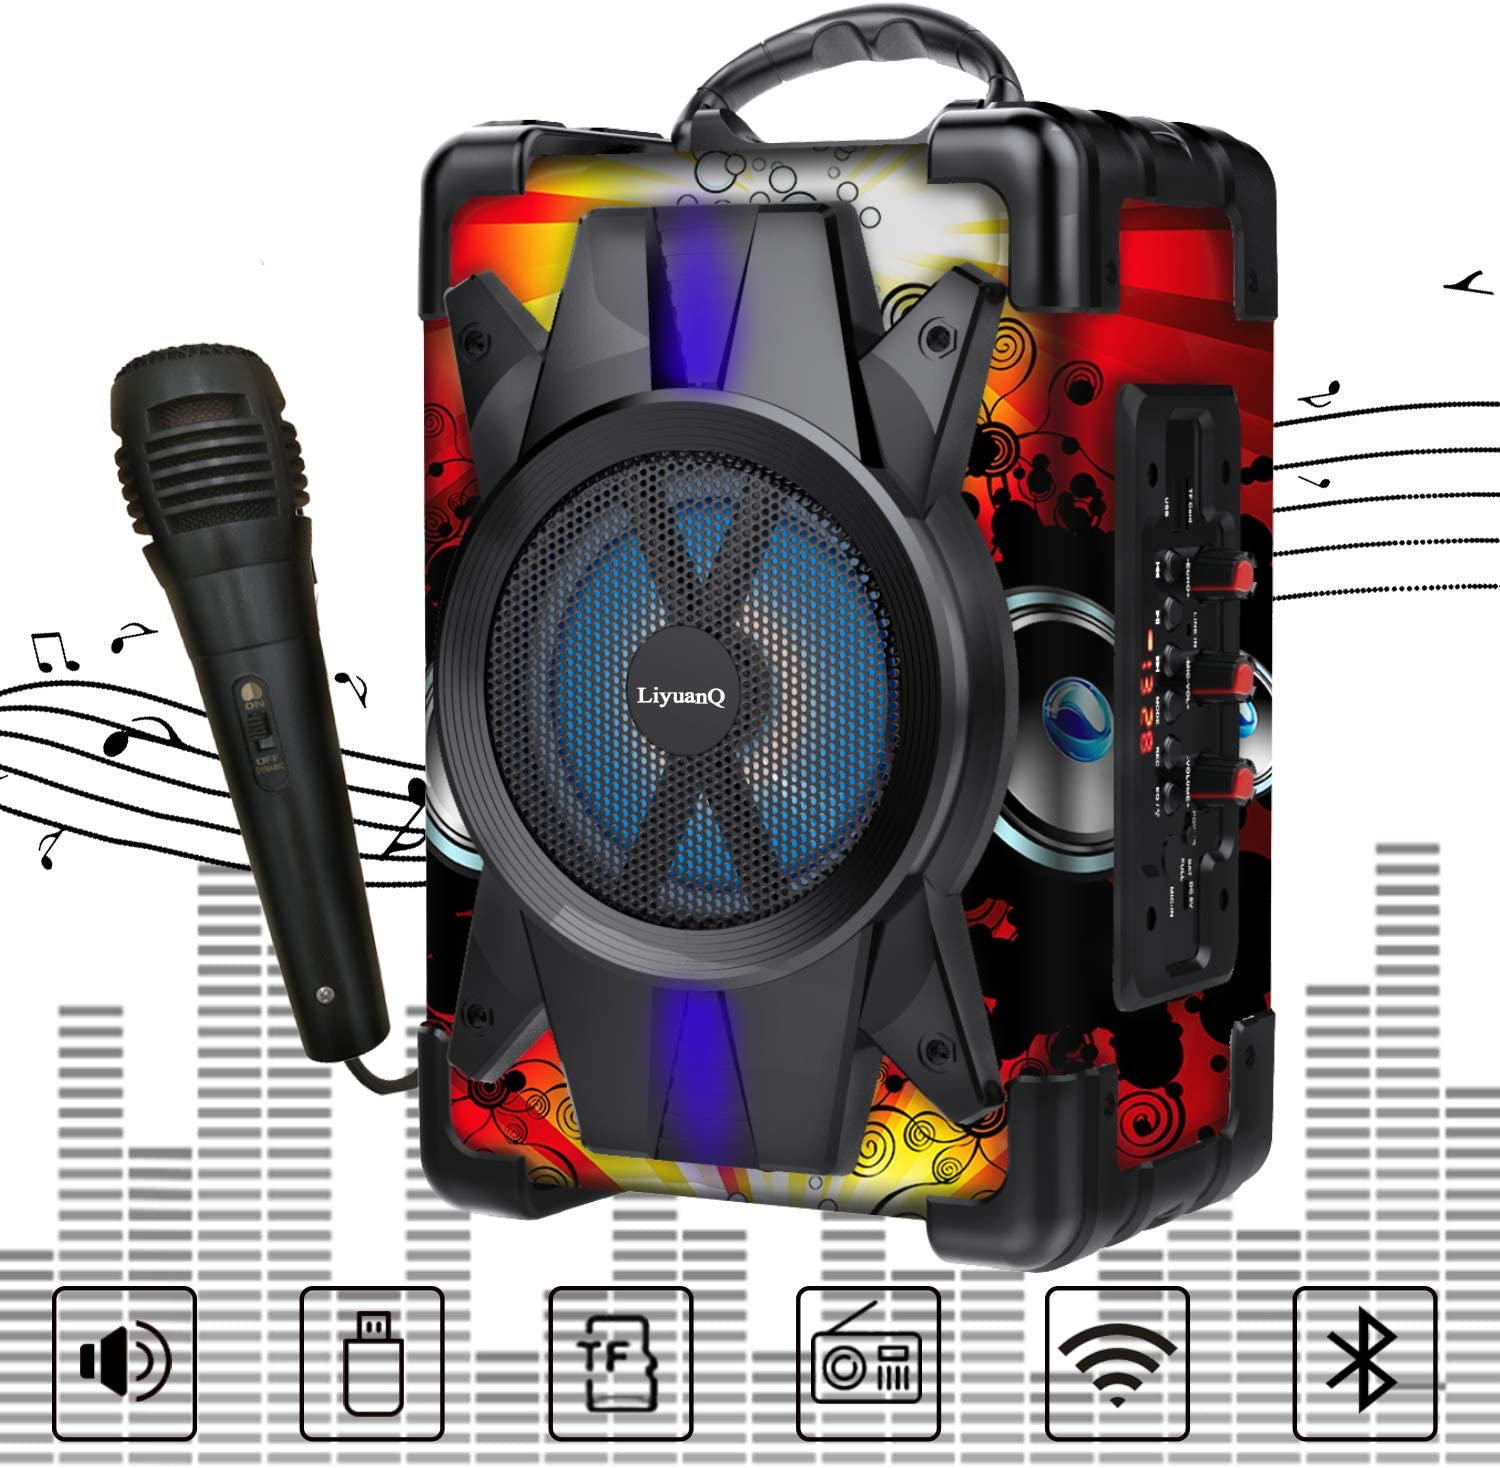 LiyuanQ Portable Wireless Bluetooth Speakers Su Microphone Ranking shop TOP20 with